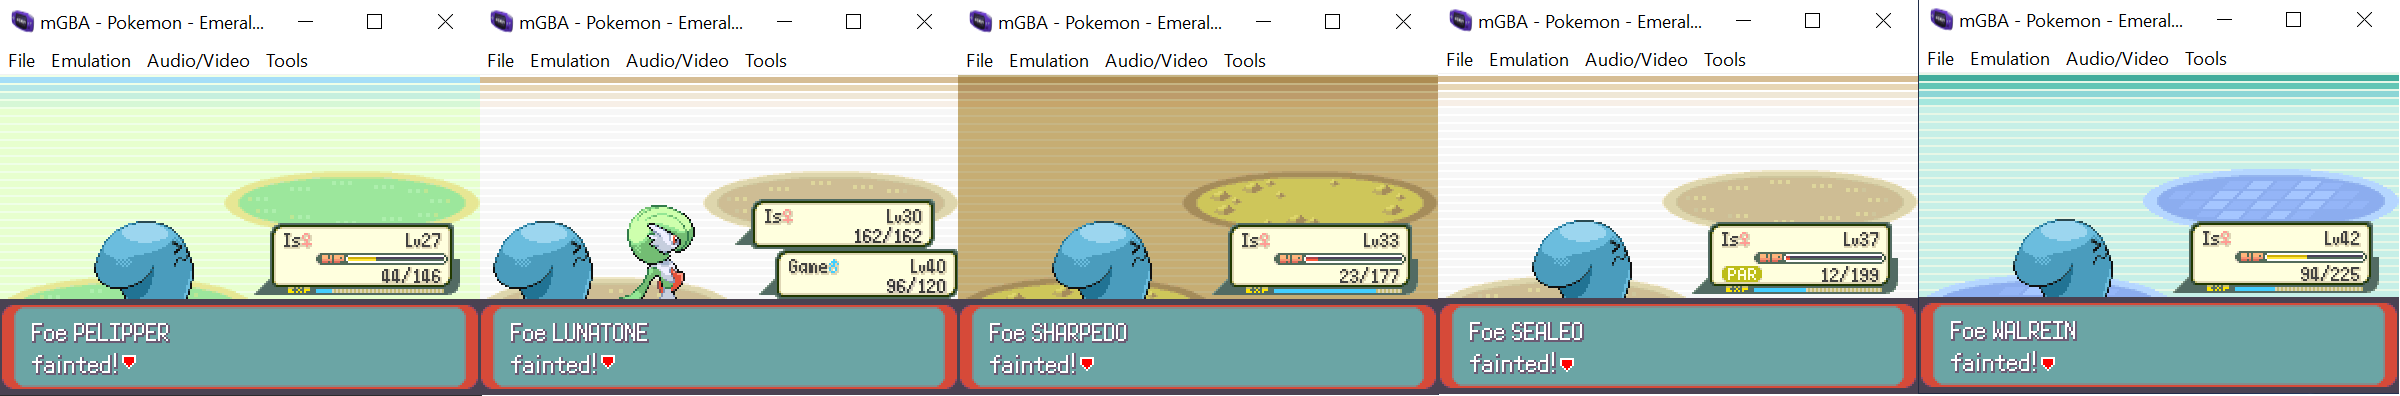 Wobbuffet Solo Collage.png